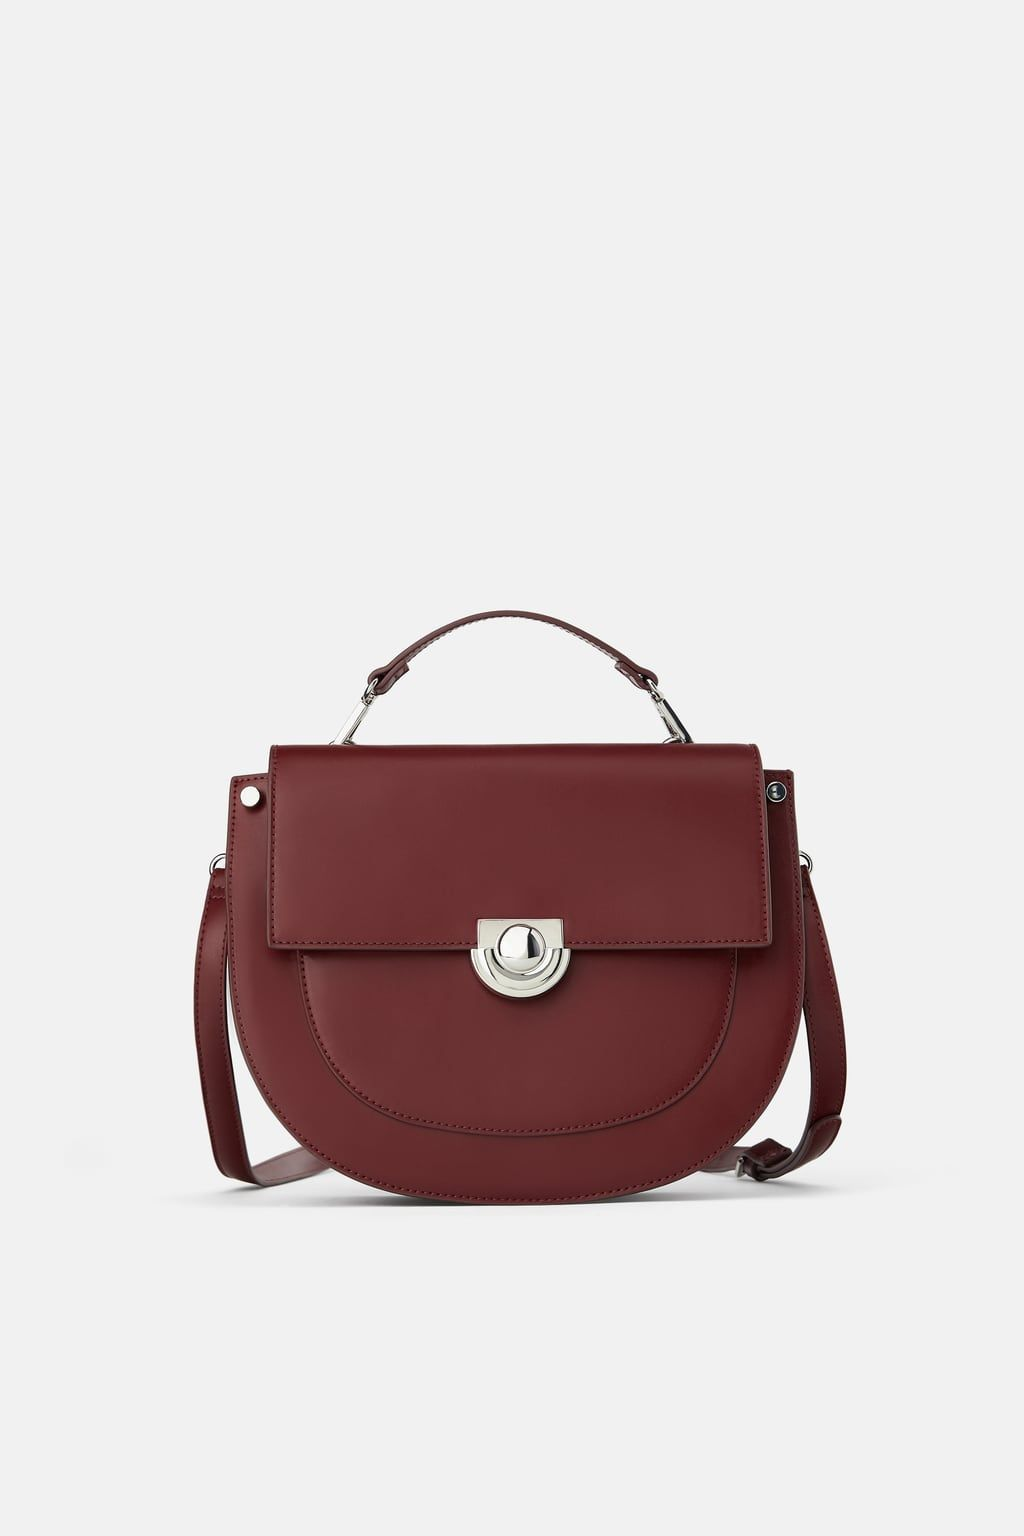 JL Collections Womens Leather Crossbody Bag